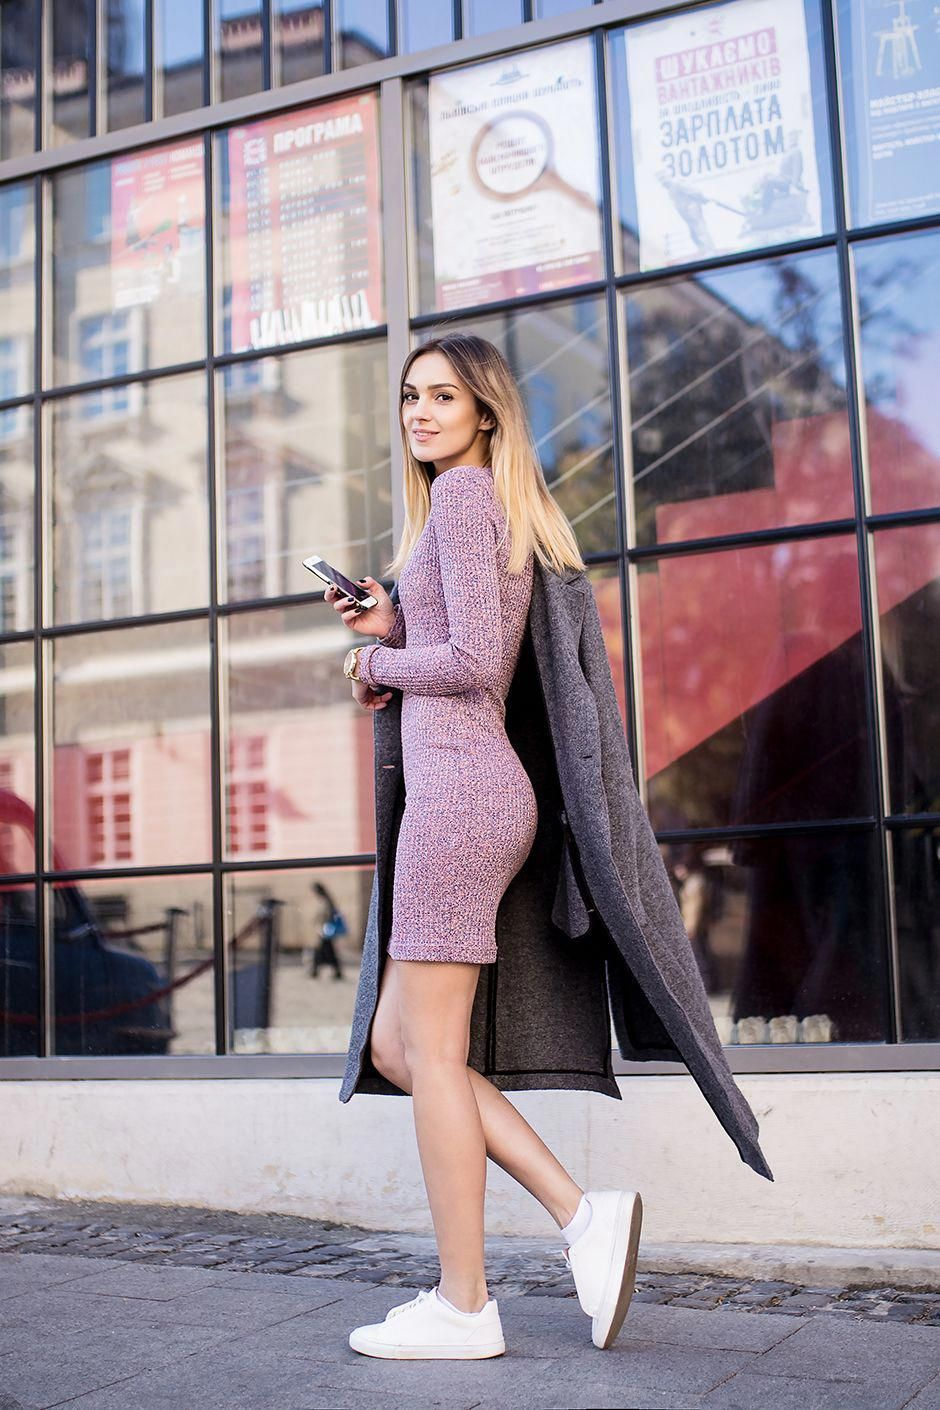 Sweater Dress Combined With White Sneakers Great Street Style Women Scoats Sweater Dress Sweater Dress Fashion Dress And Sneakers Outfit [ 1410 x 940 Pixel ]